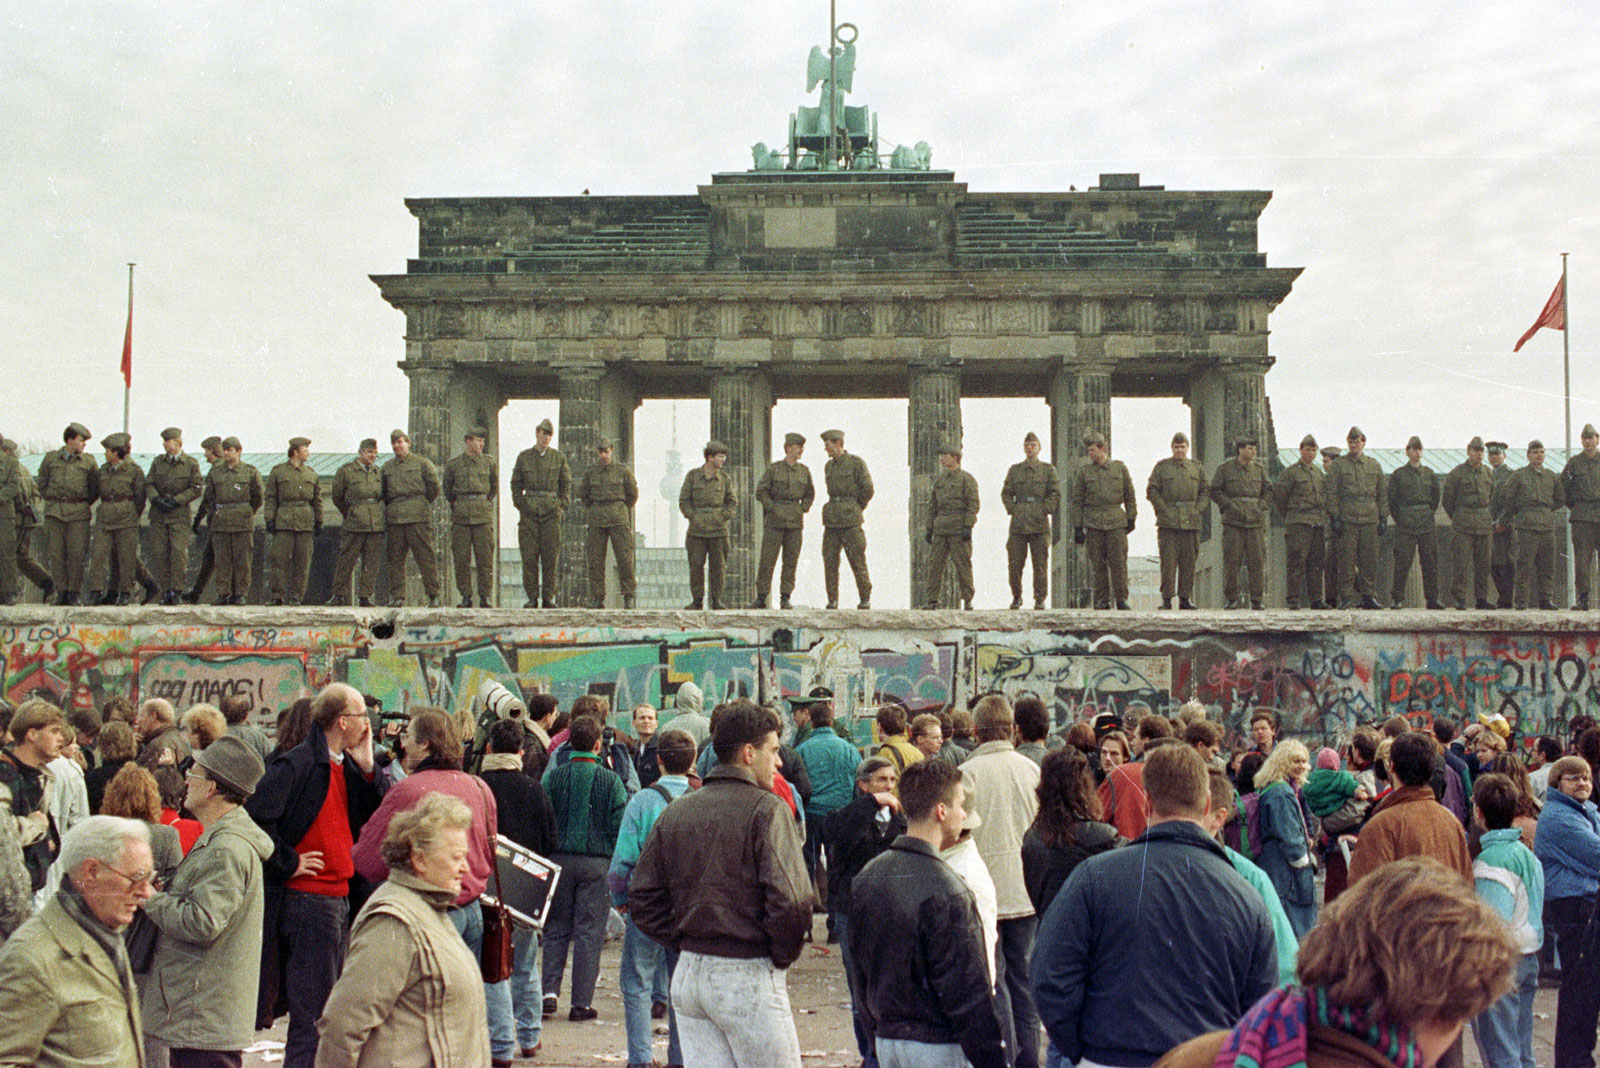 East Berlin border guards standing atop the Berlin Wall in front of the Brandenburg Gate, November 11, 1989